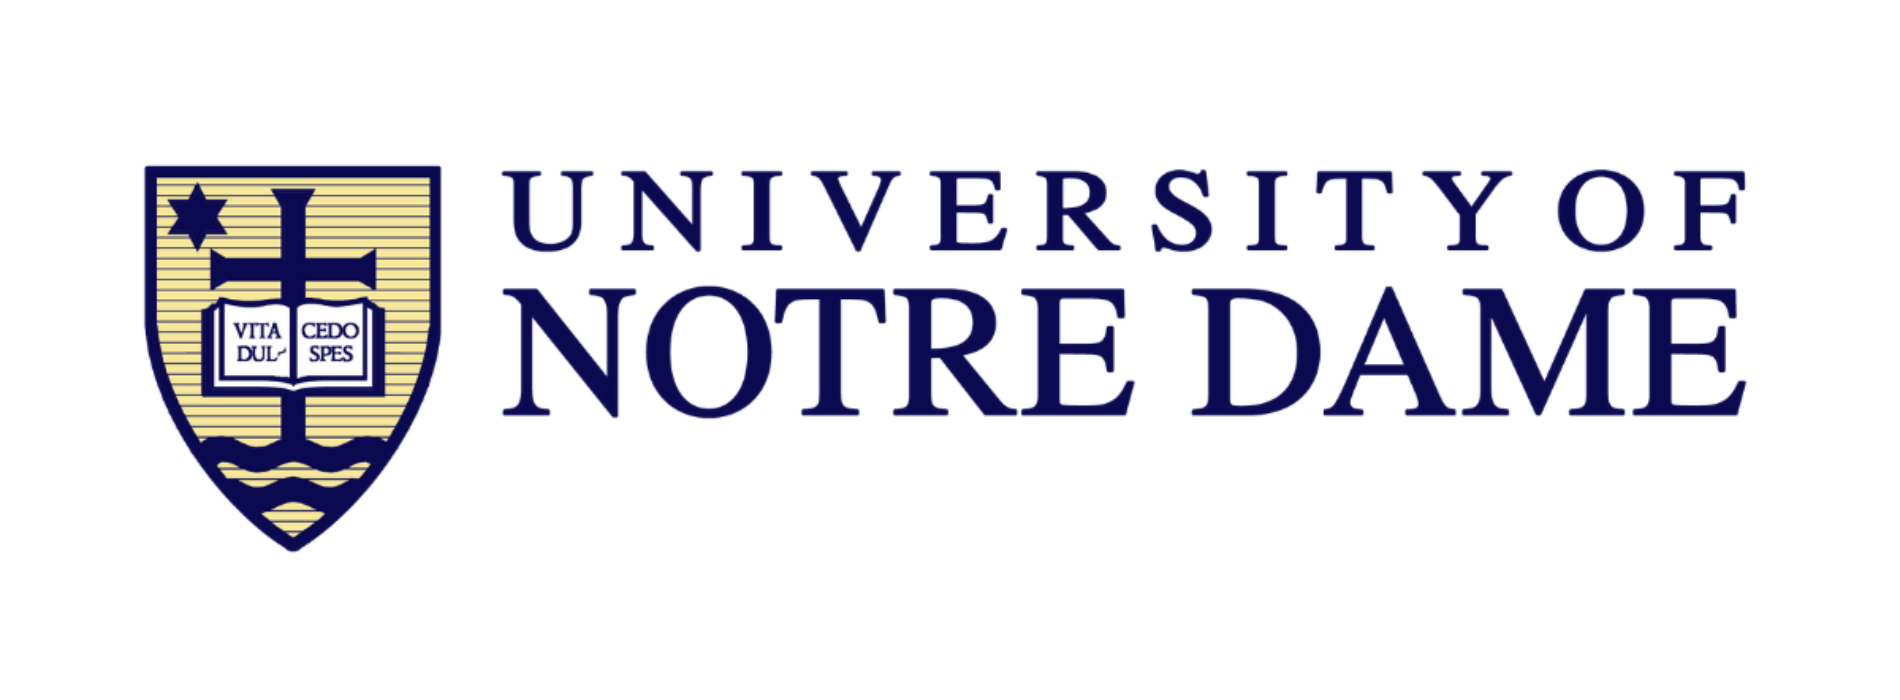 Notre Dame Releases Statement on Allowing Athletes to be Compensated for Likenesses